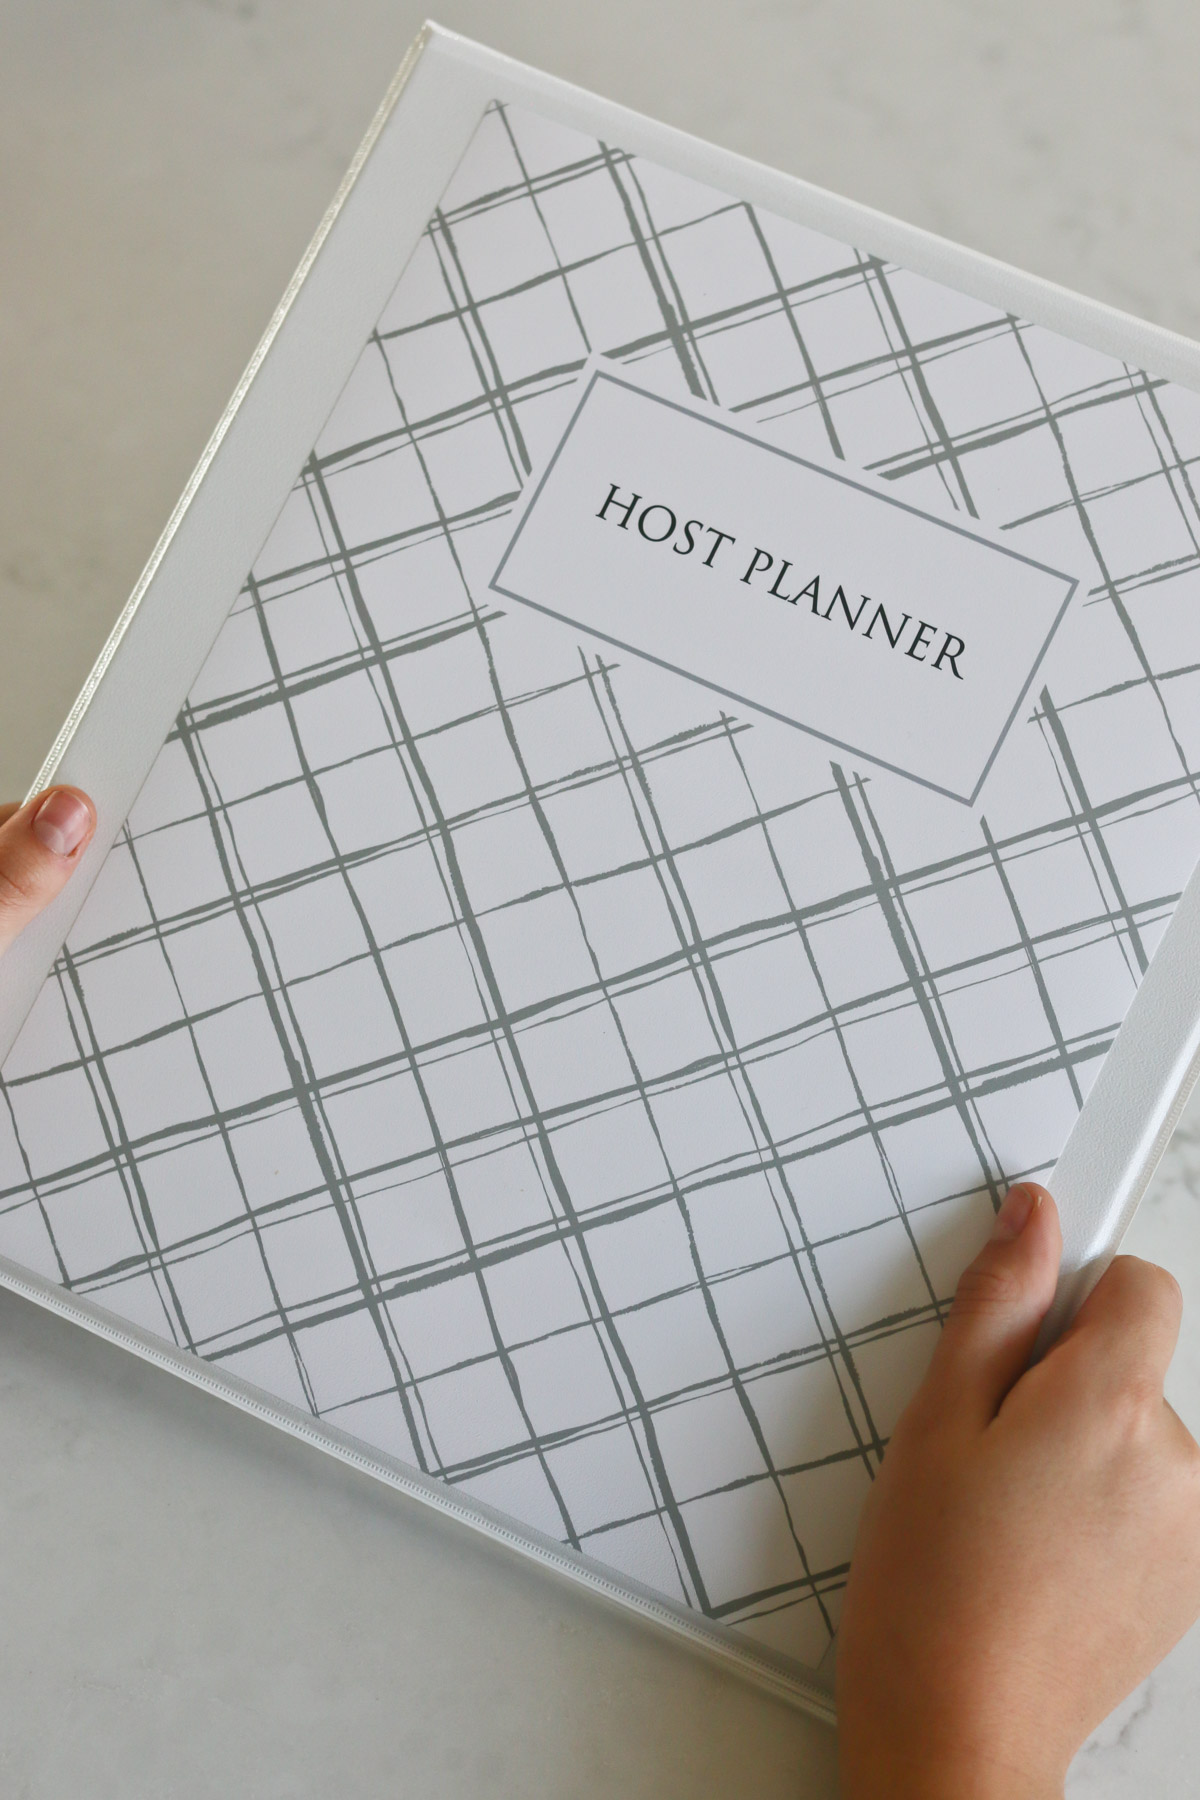 hands holding a copy of the Host Planner in a binder